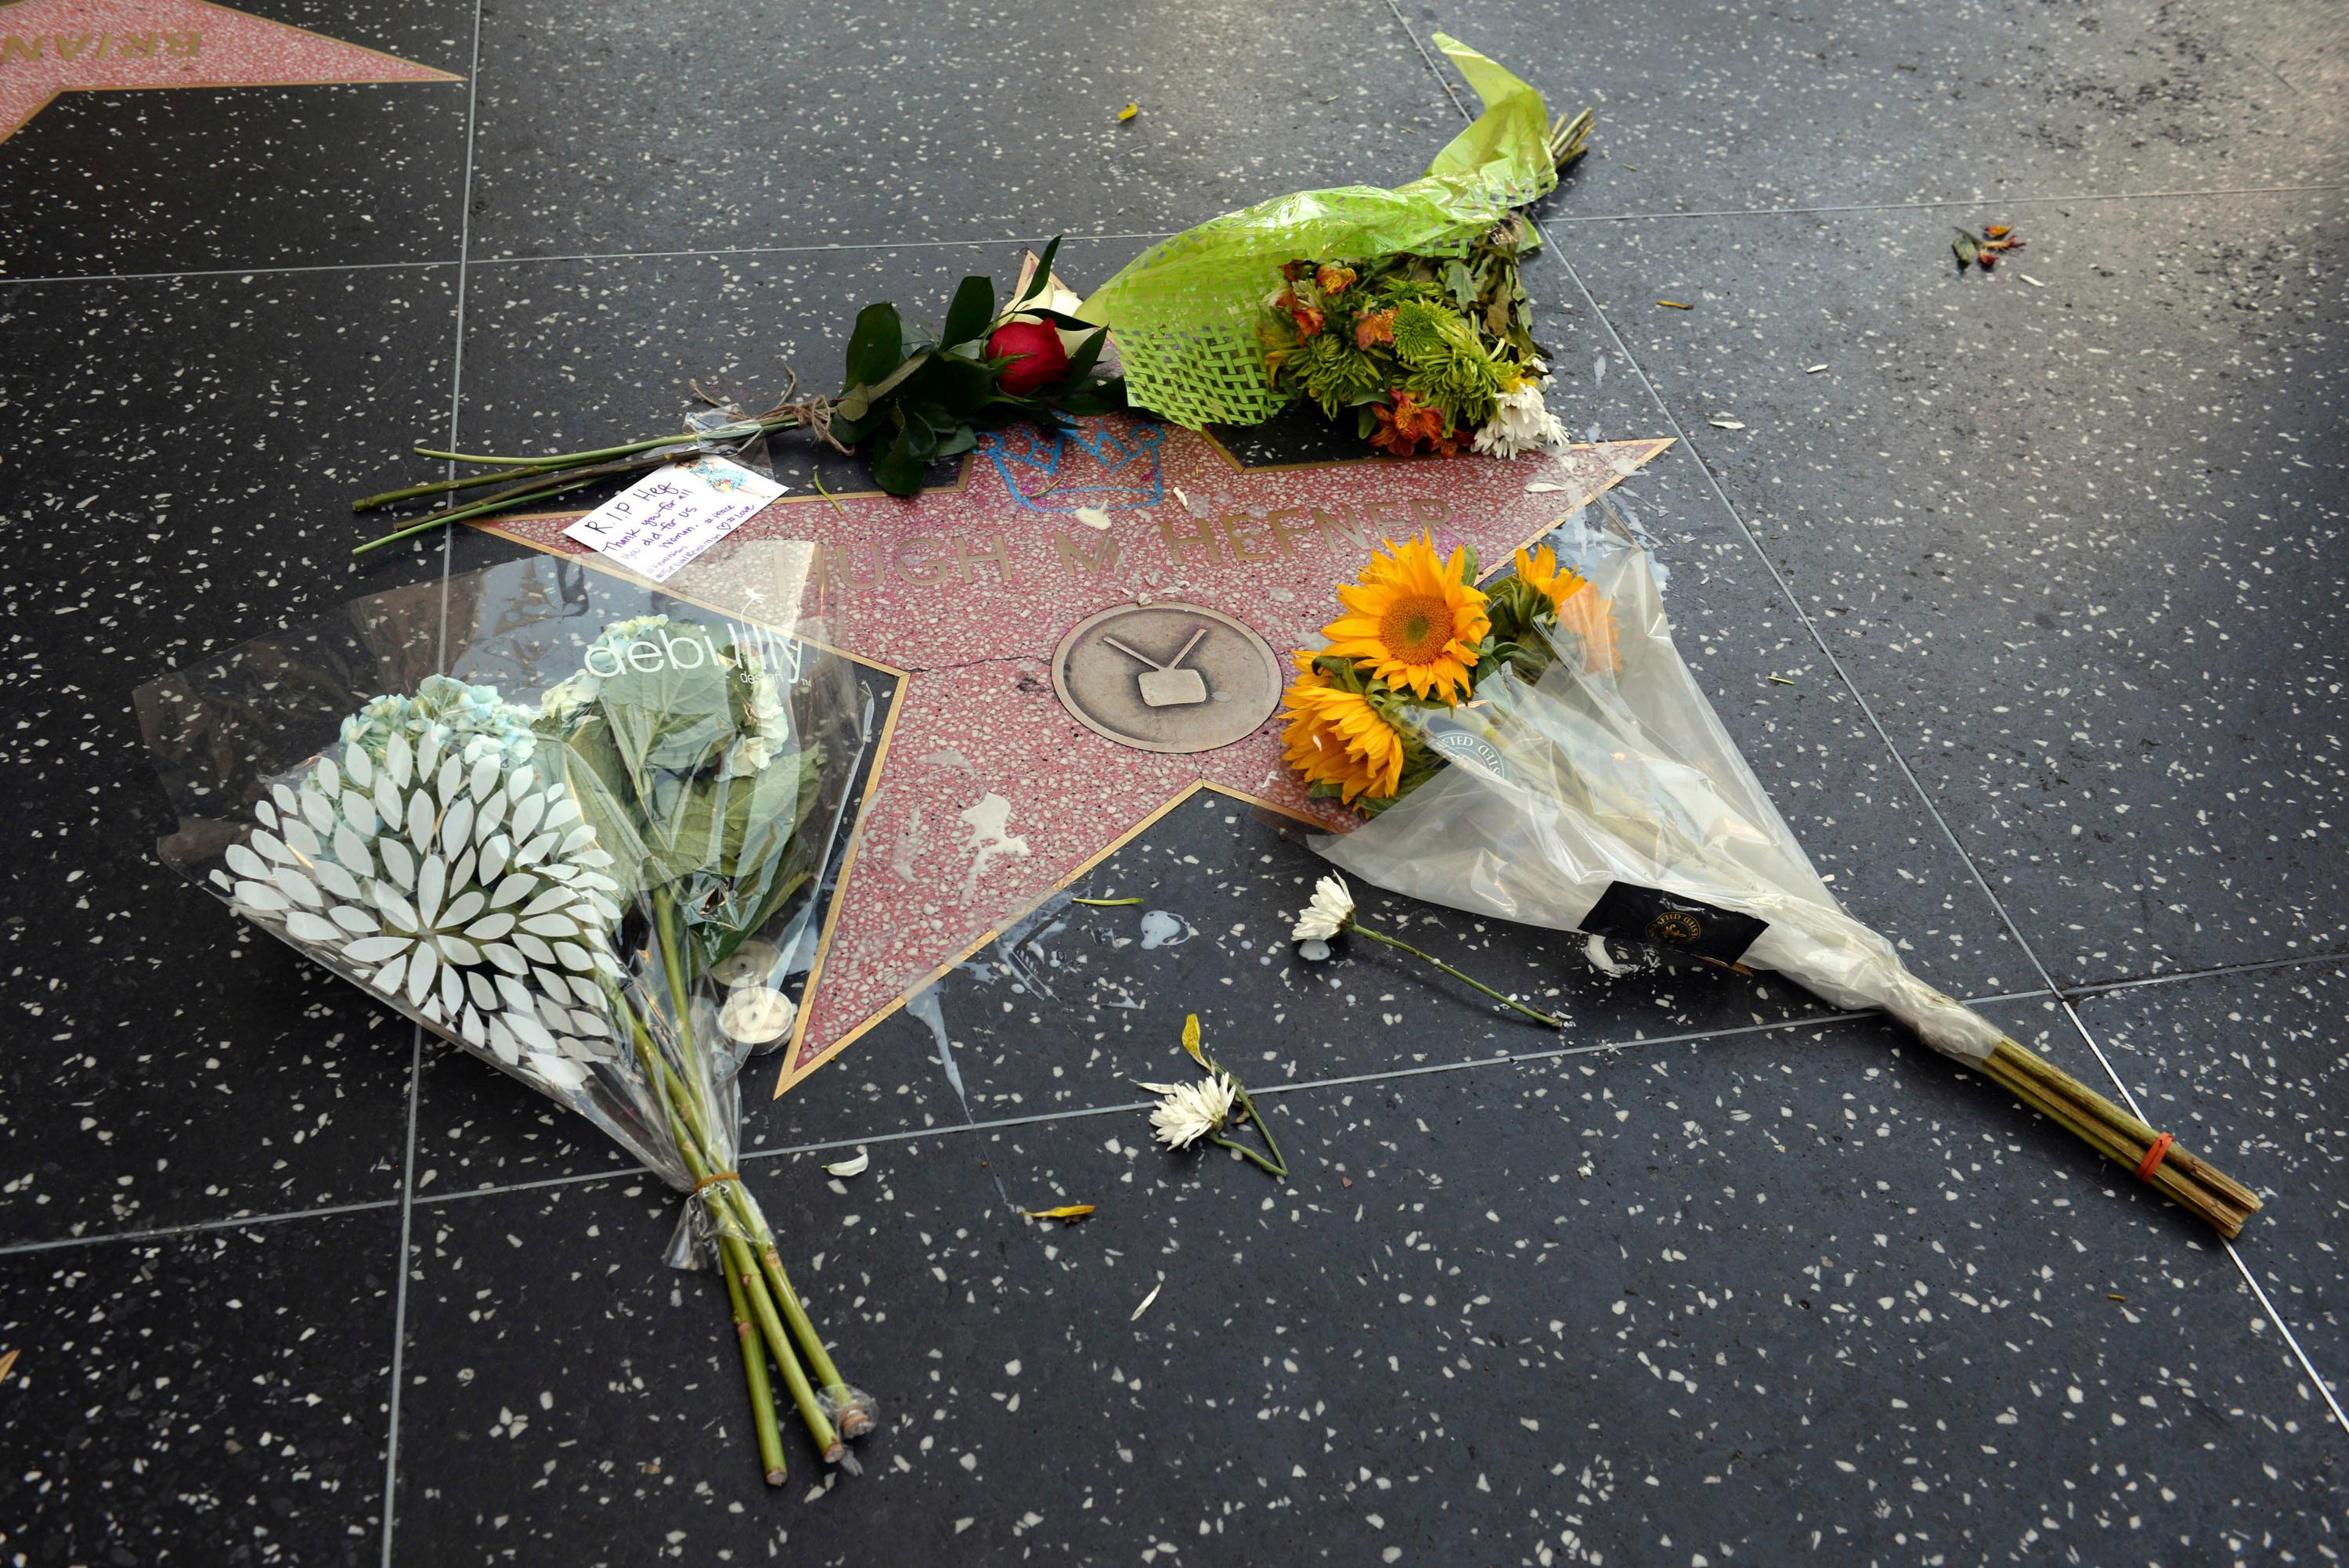 Flowers are placed on Hugh Hefner's star on the Hollywood Walk of Fame Thursday, Sept. 28, 2017 in Los Angeles.  Hefner died of natural causes at his home on Wednesday at the age of 91. (AP Photo/Axel Koester)